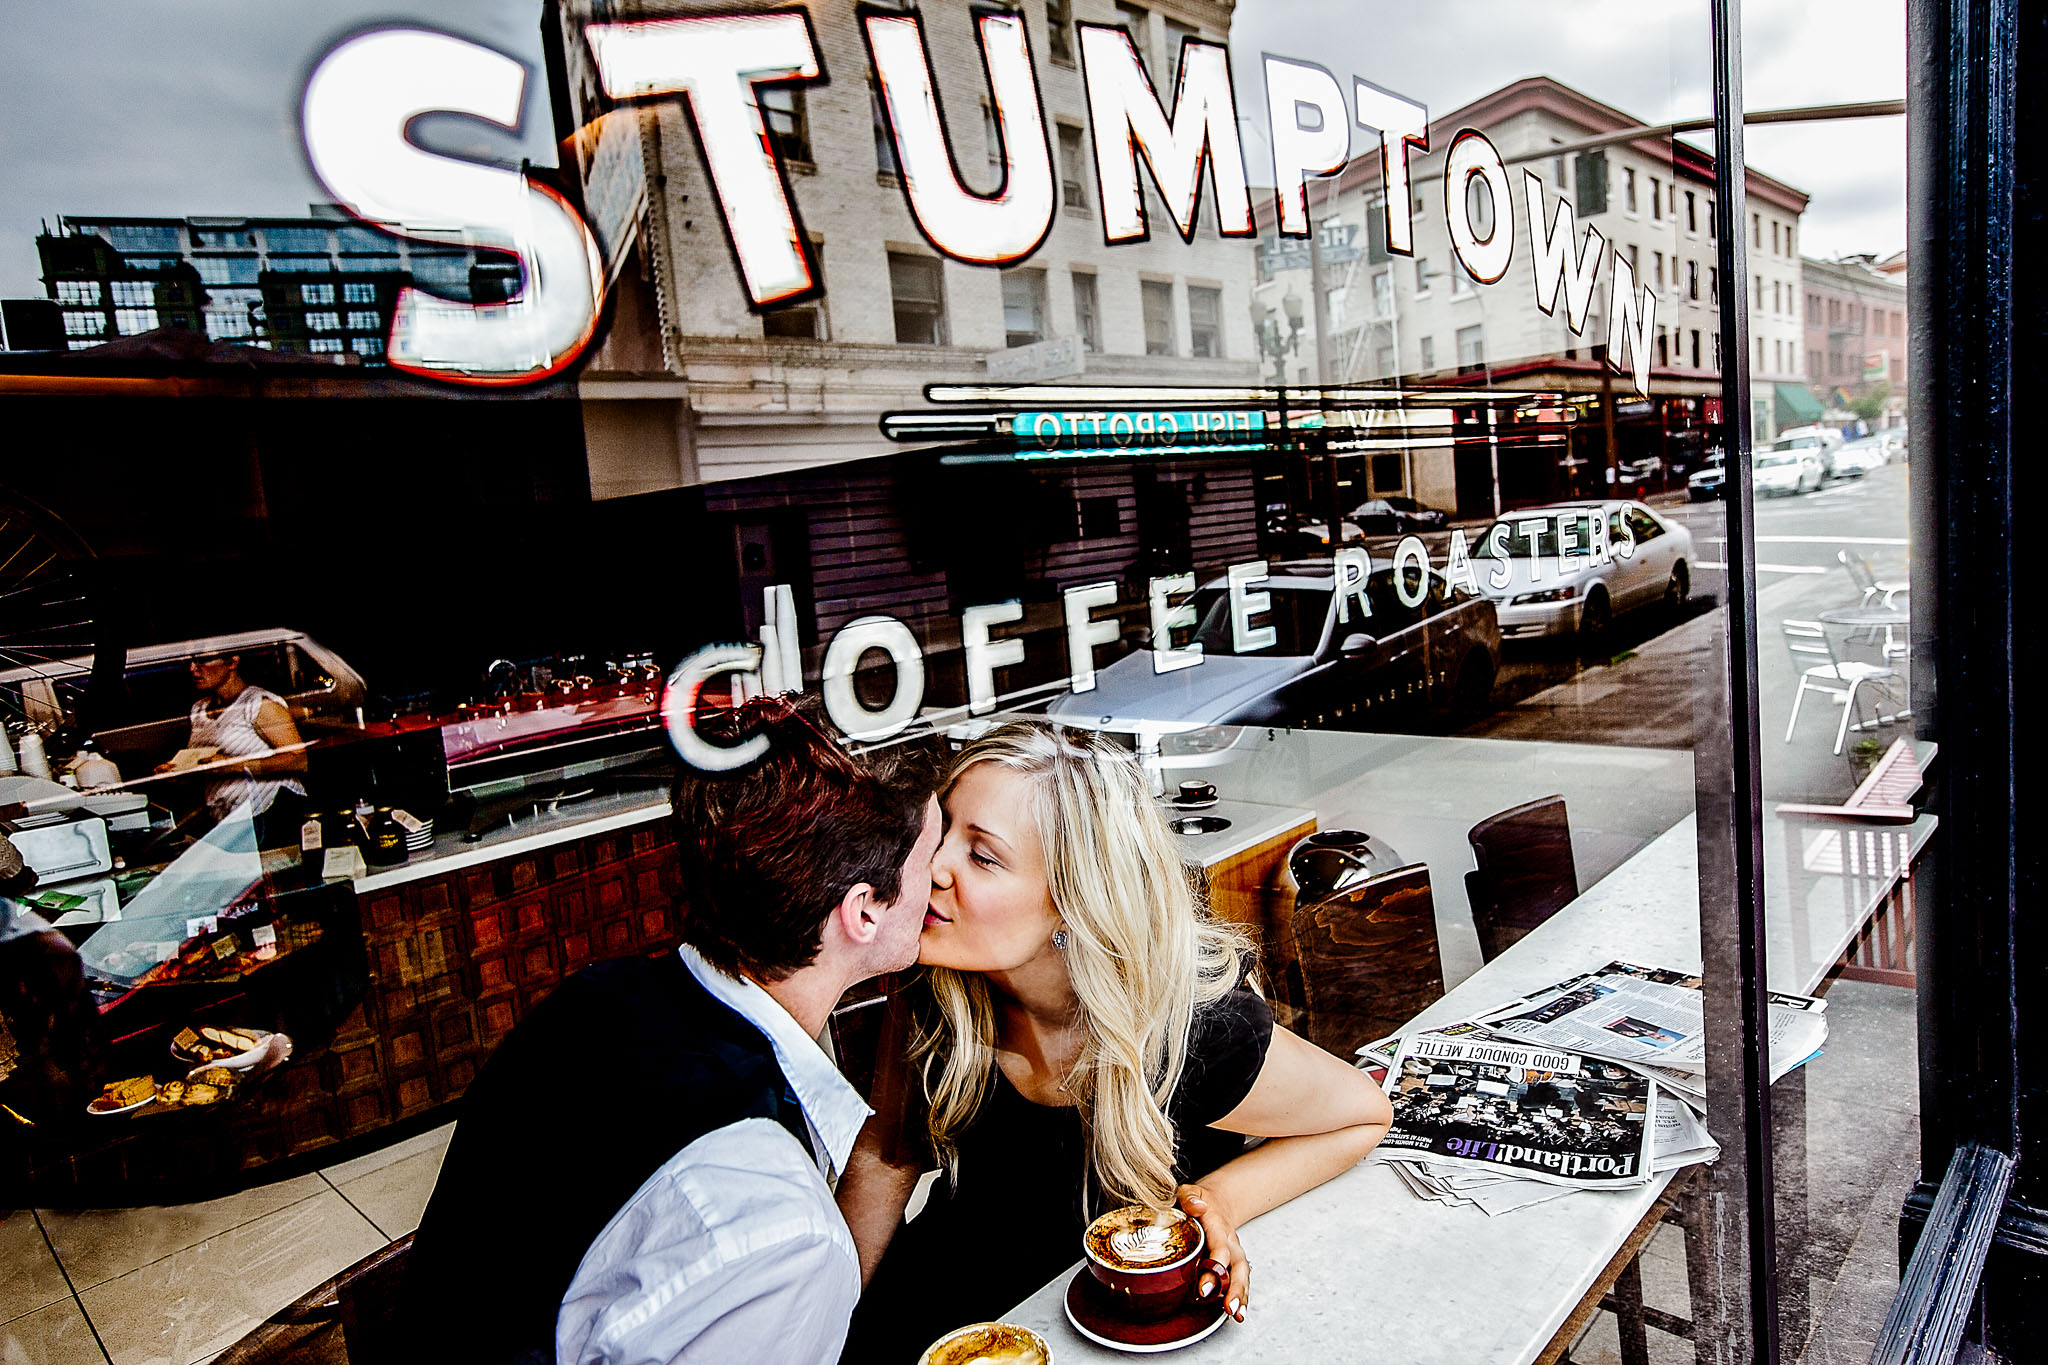 Stumptown Coffee Roasters with Engagement Photo through window in Portland Oregon